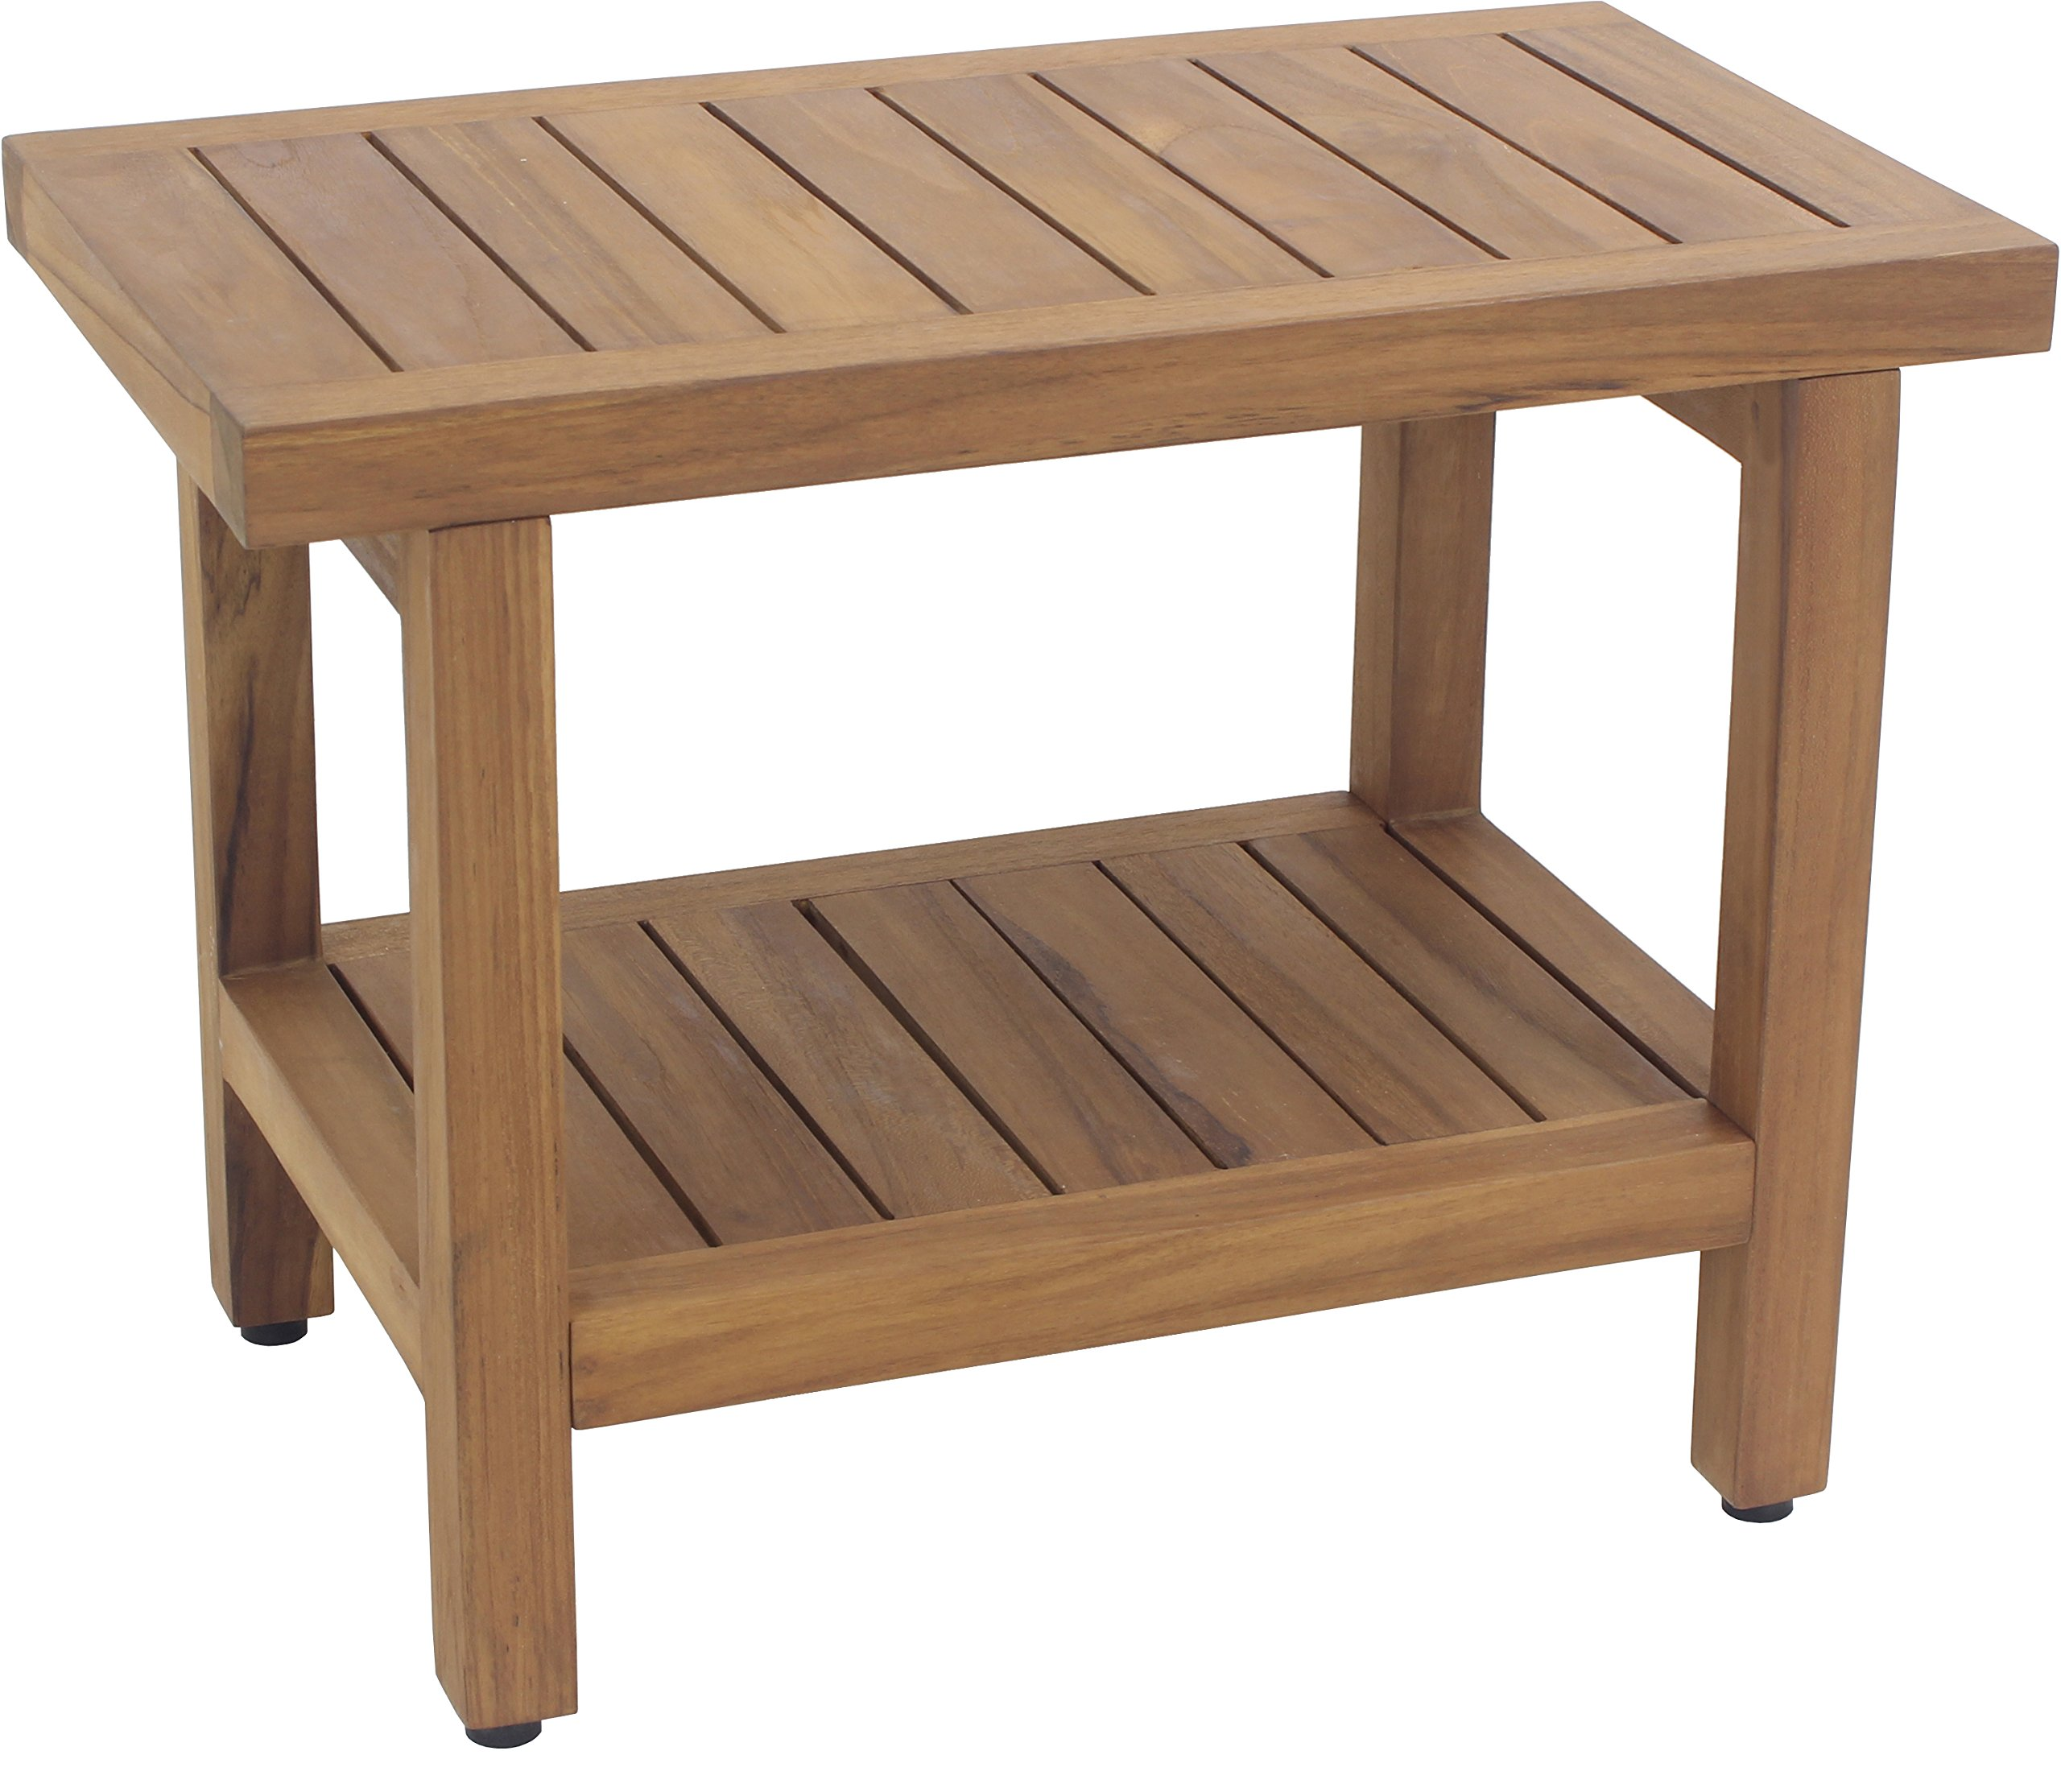 Spa Teak Shower Bench - 24 , Bench Only